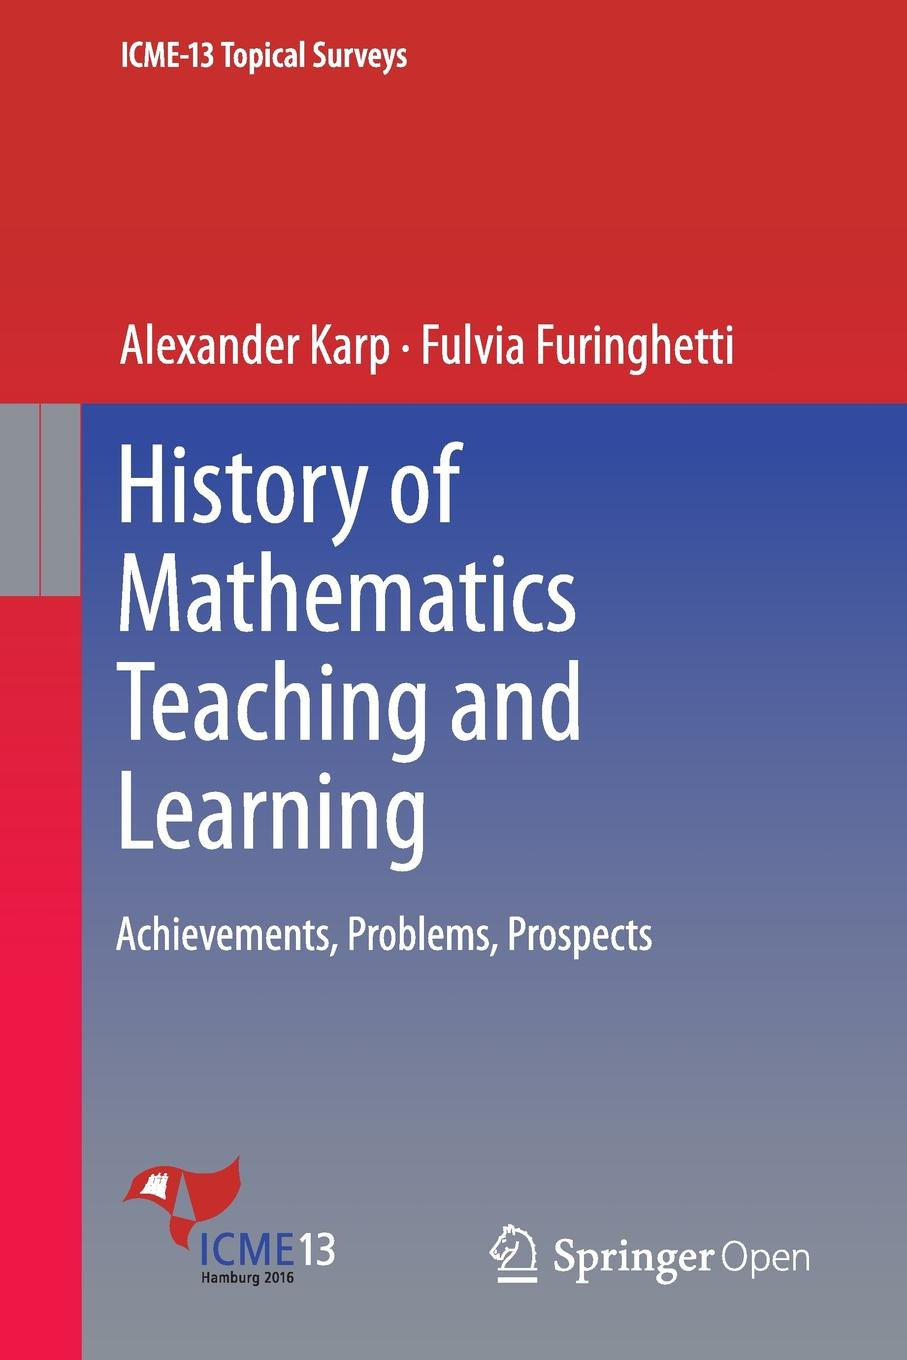 Alexander Karp, Fulvia Furinghetti History of Mathematics Teaching and Learning. Achievements, Problems, Prospects mike maxwell future focused history teaching restoring the power of historical learning